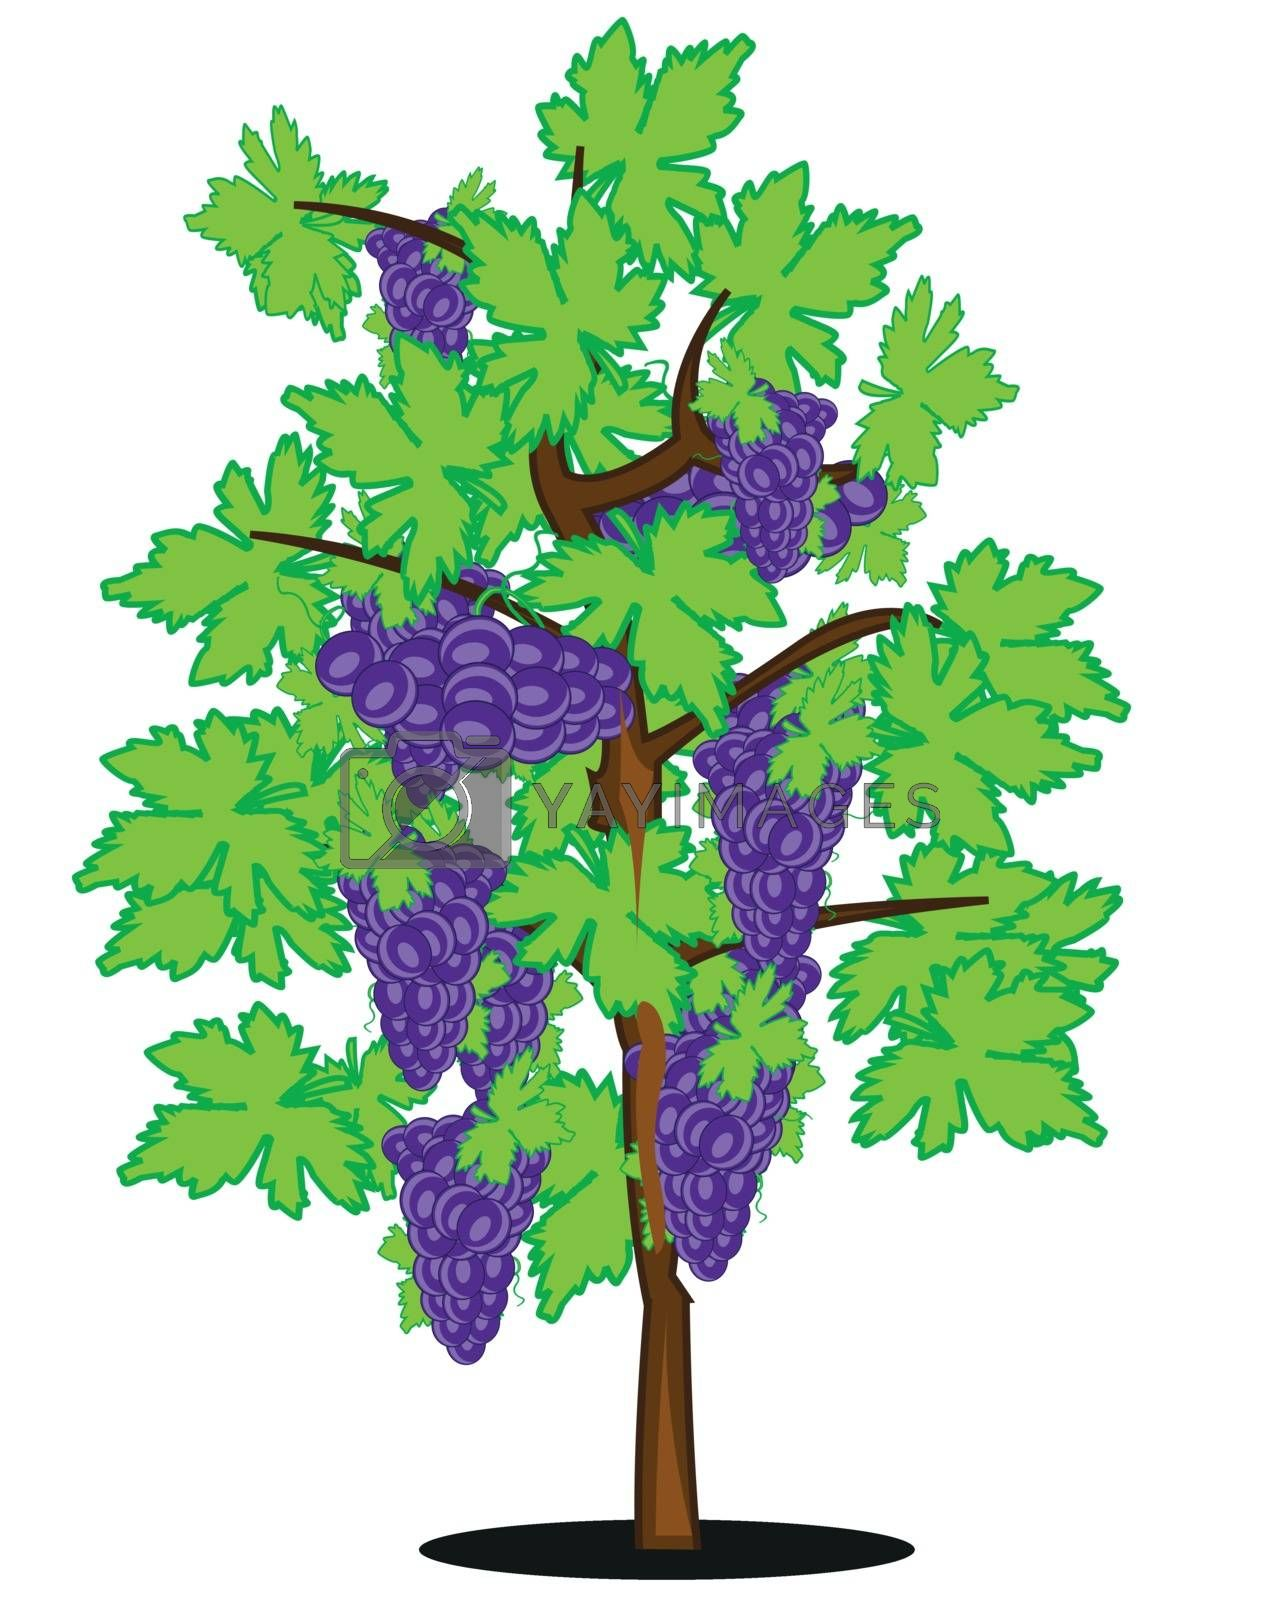 Bush of ripe grape on white background is insulated